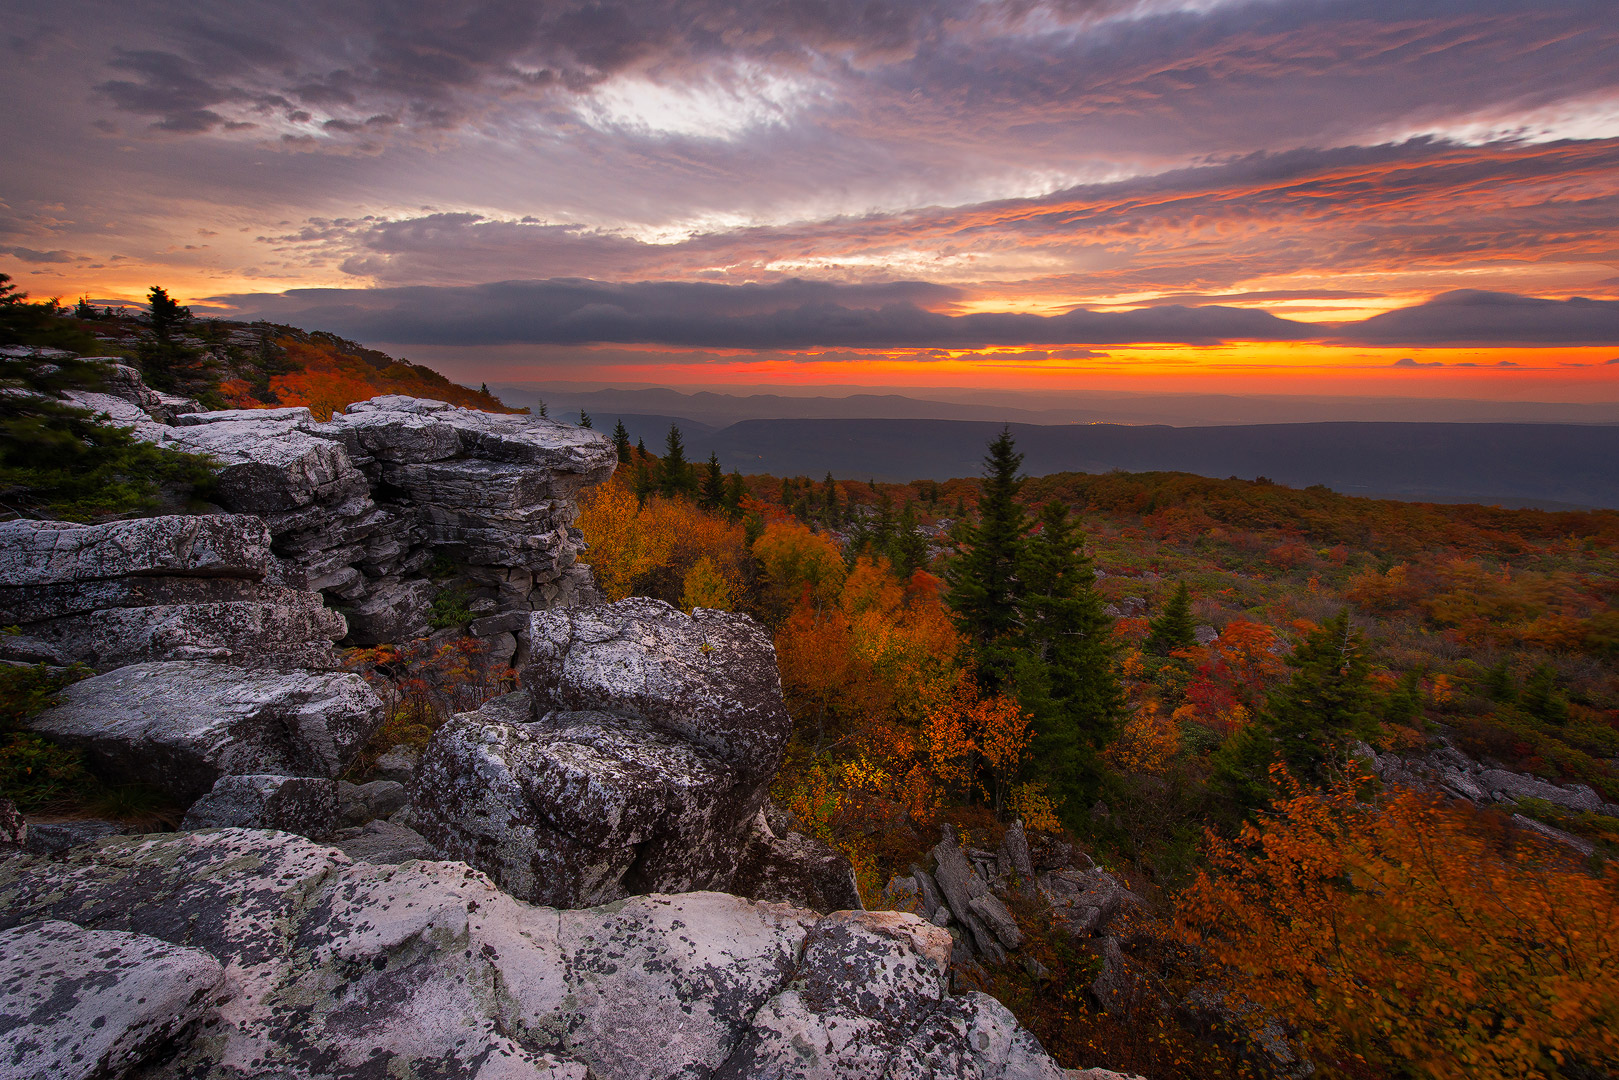 West Virginia, Bear Rocks, Dolly Sods Wilderness, Canaan Valley, Hemlock, Mountain Laurel, Dolly Sods, Allegheny Mountains, Bear Rocks Preserve, Monongahela National Forest, Sunrise, Dramatic Sky, photo